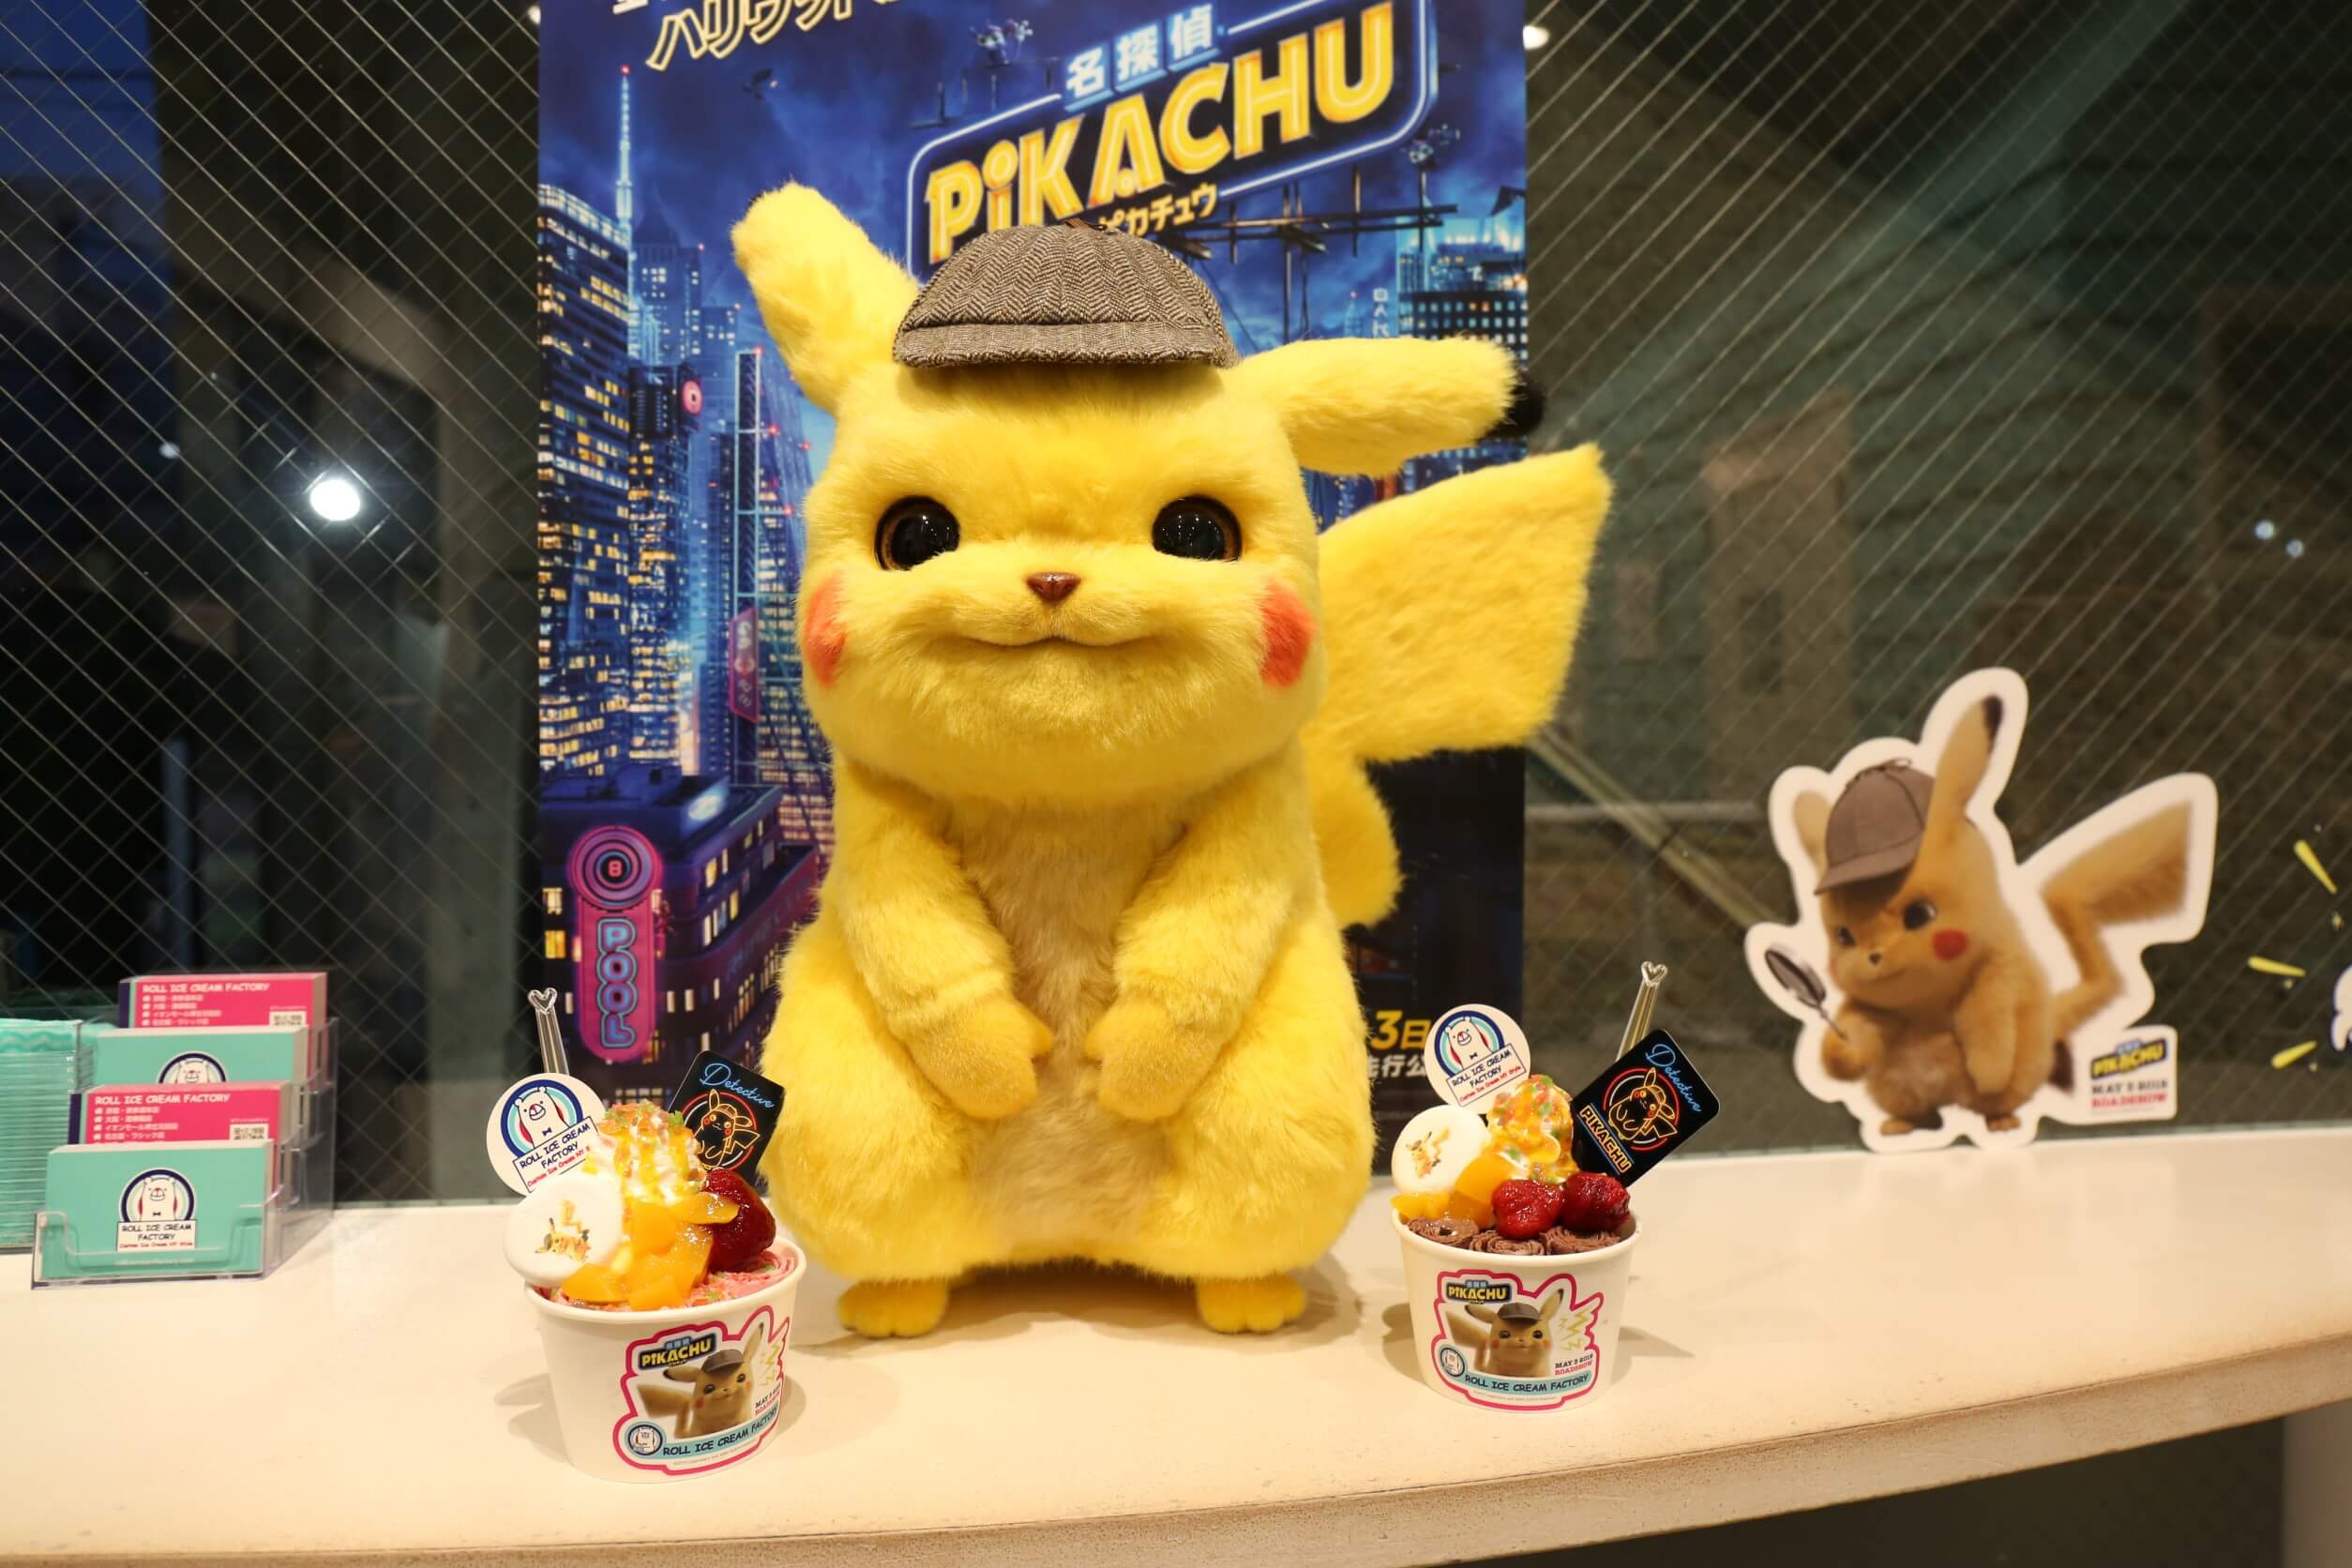 548f12f65 You can get a cute photo if you sit your ice cream next to the Pikachu in  the Omotesando shop. If you look really closely you can see that the  marshmallows ...